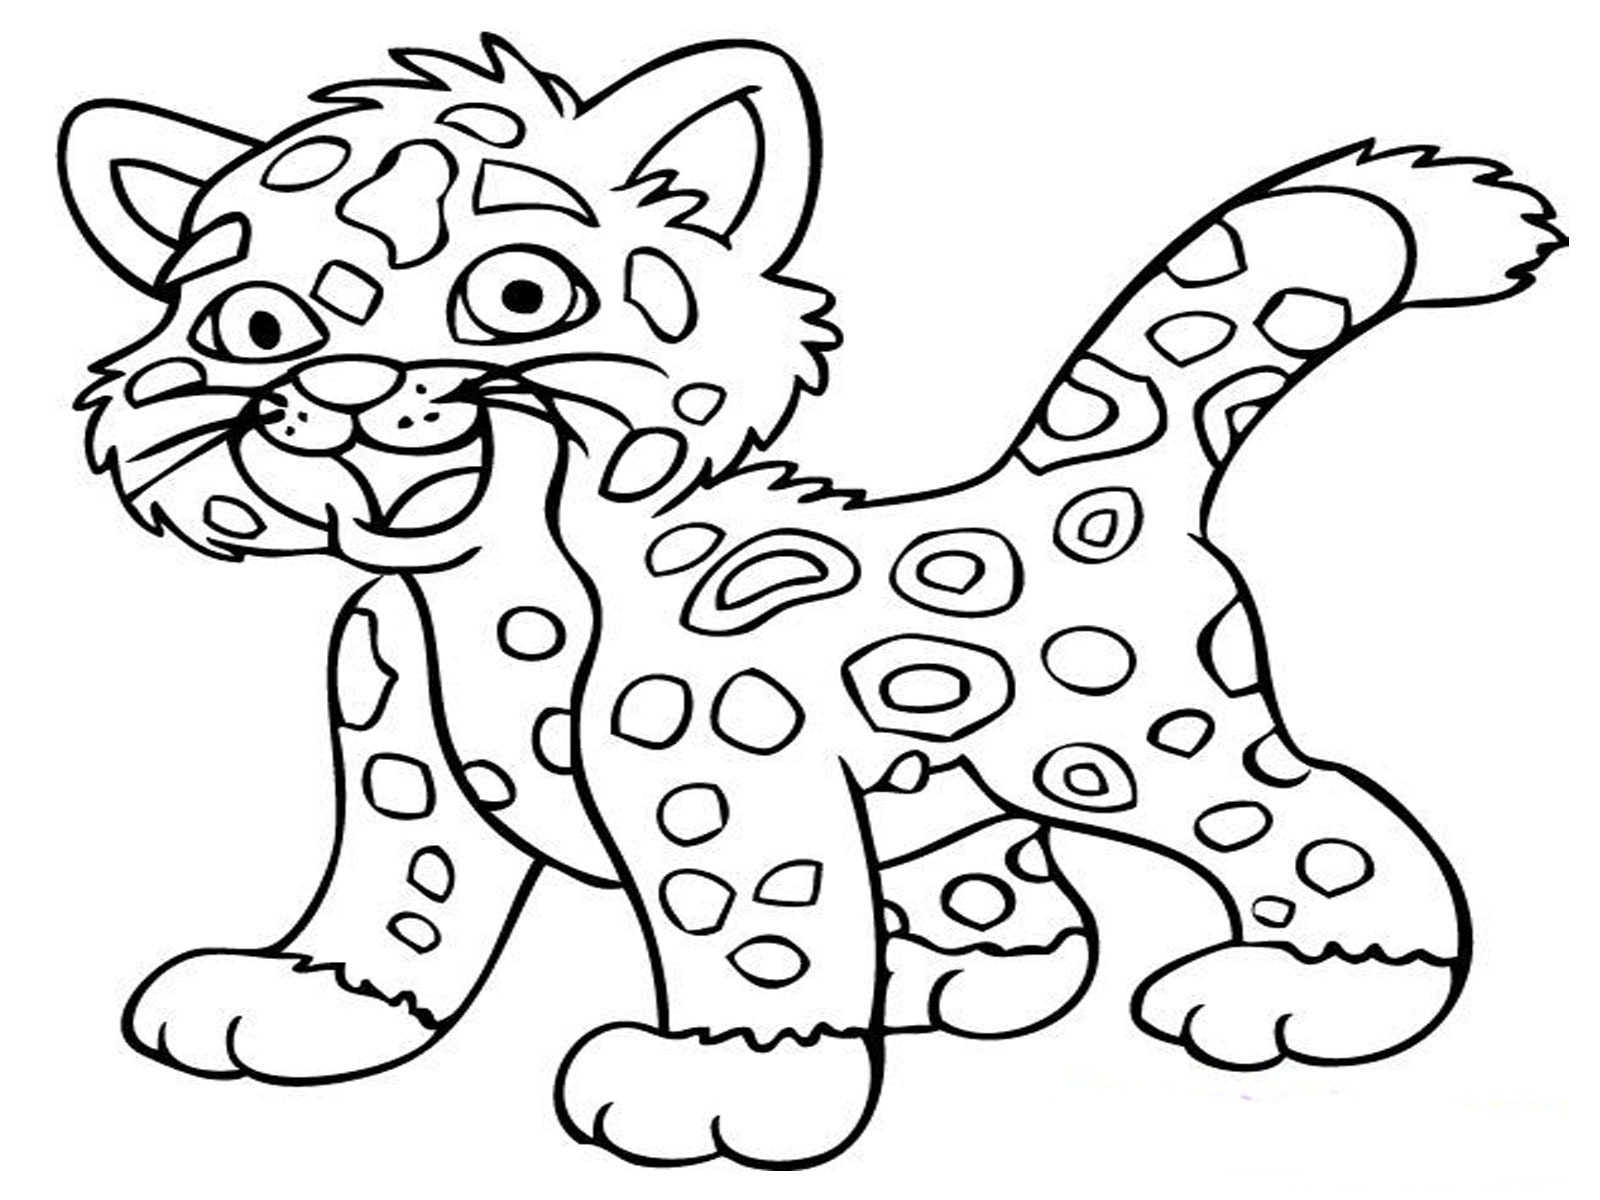 Jaguar Animal Coloring Pages Realistic Coloring Pages Printable Coloring Pages Of Animals